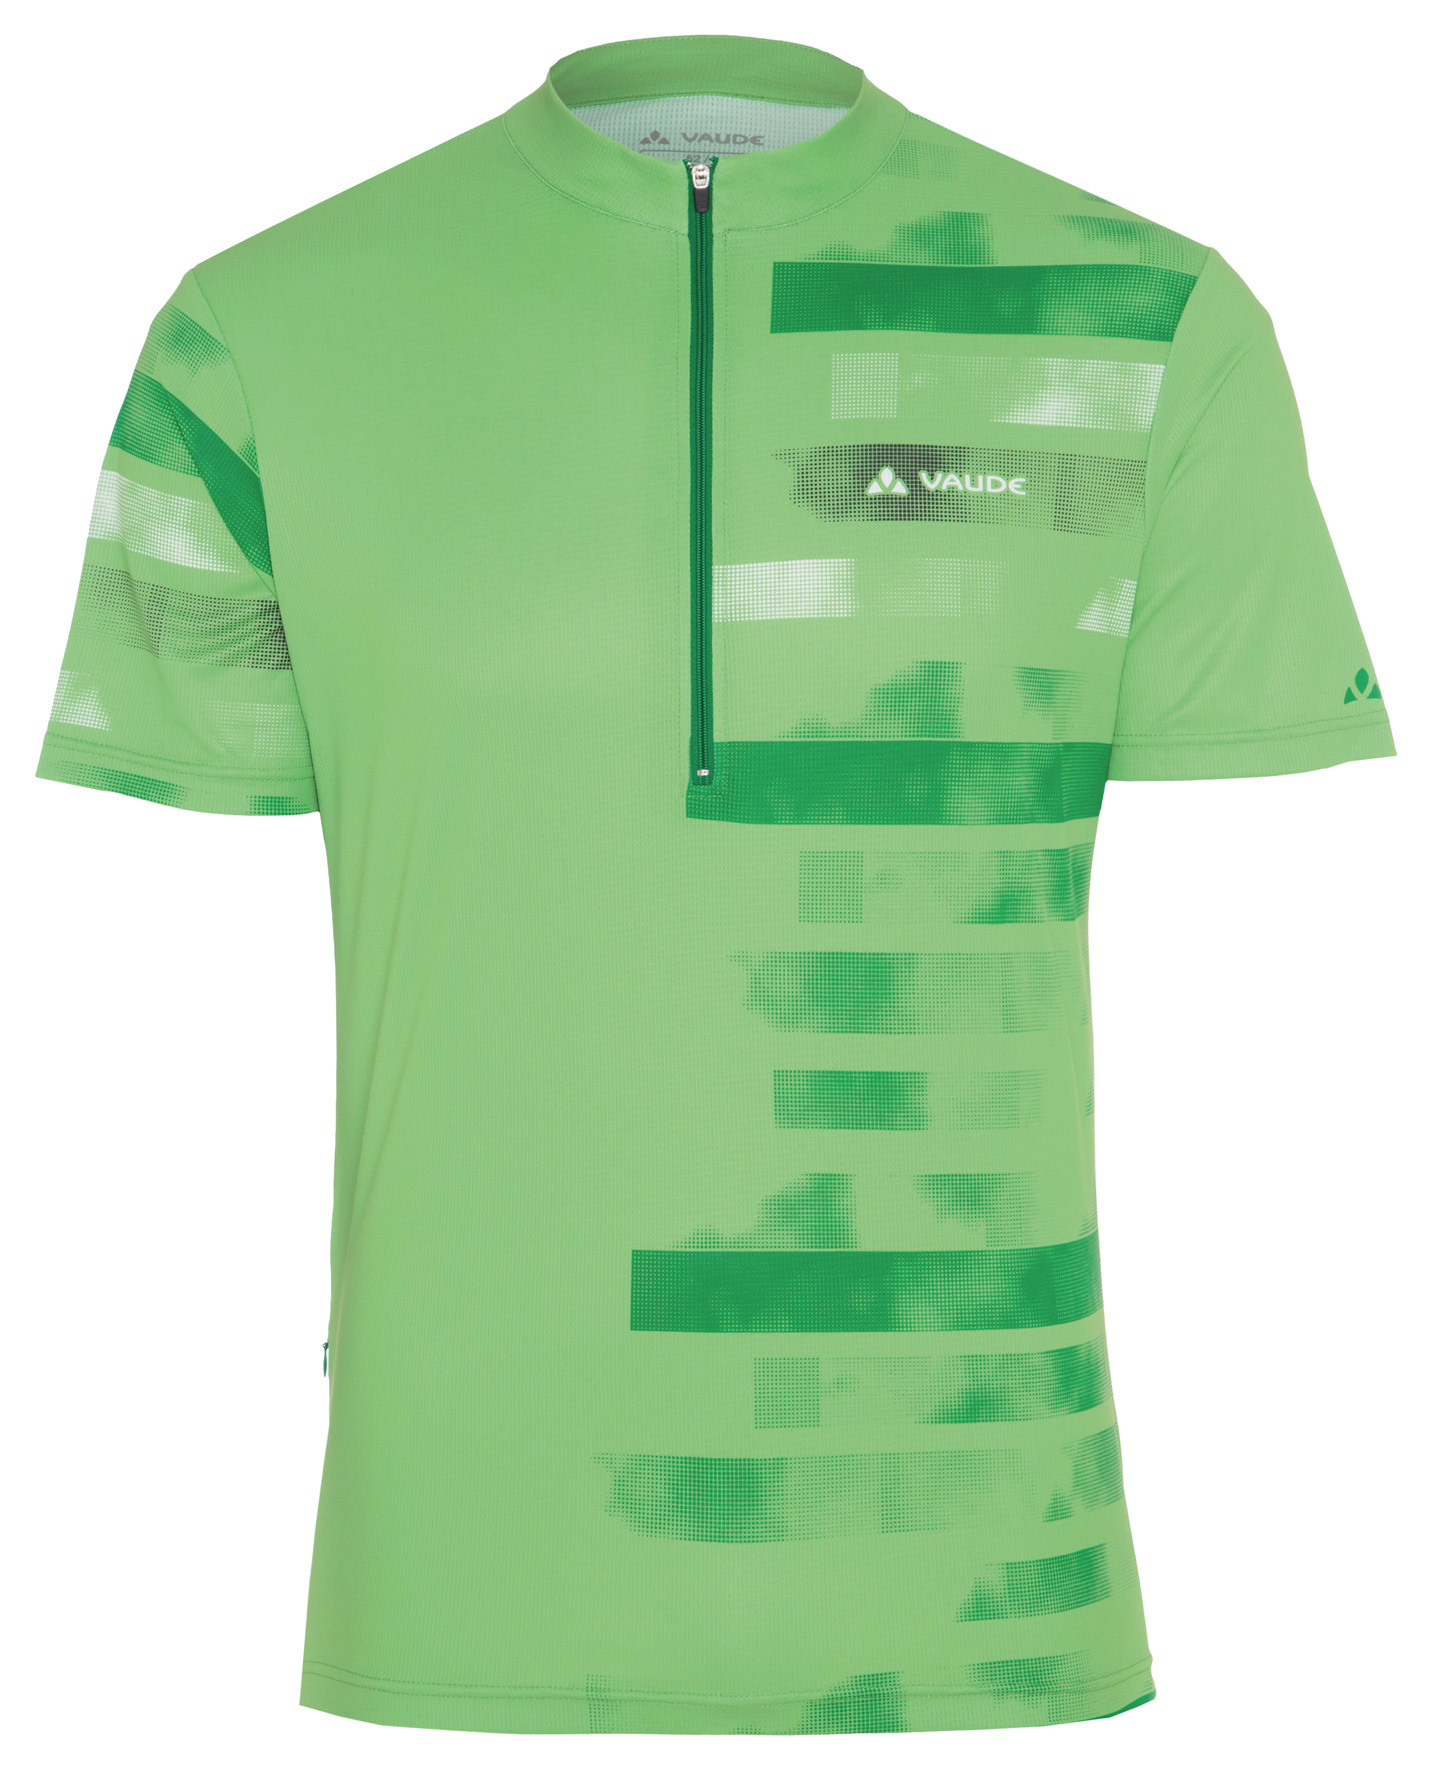 Men´s Tremalzo Shirt grasshopper Größe S - schneider-sports